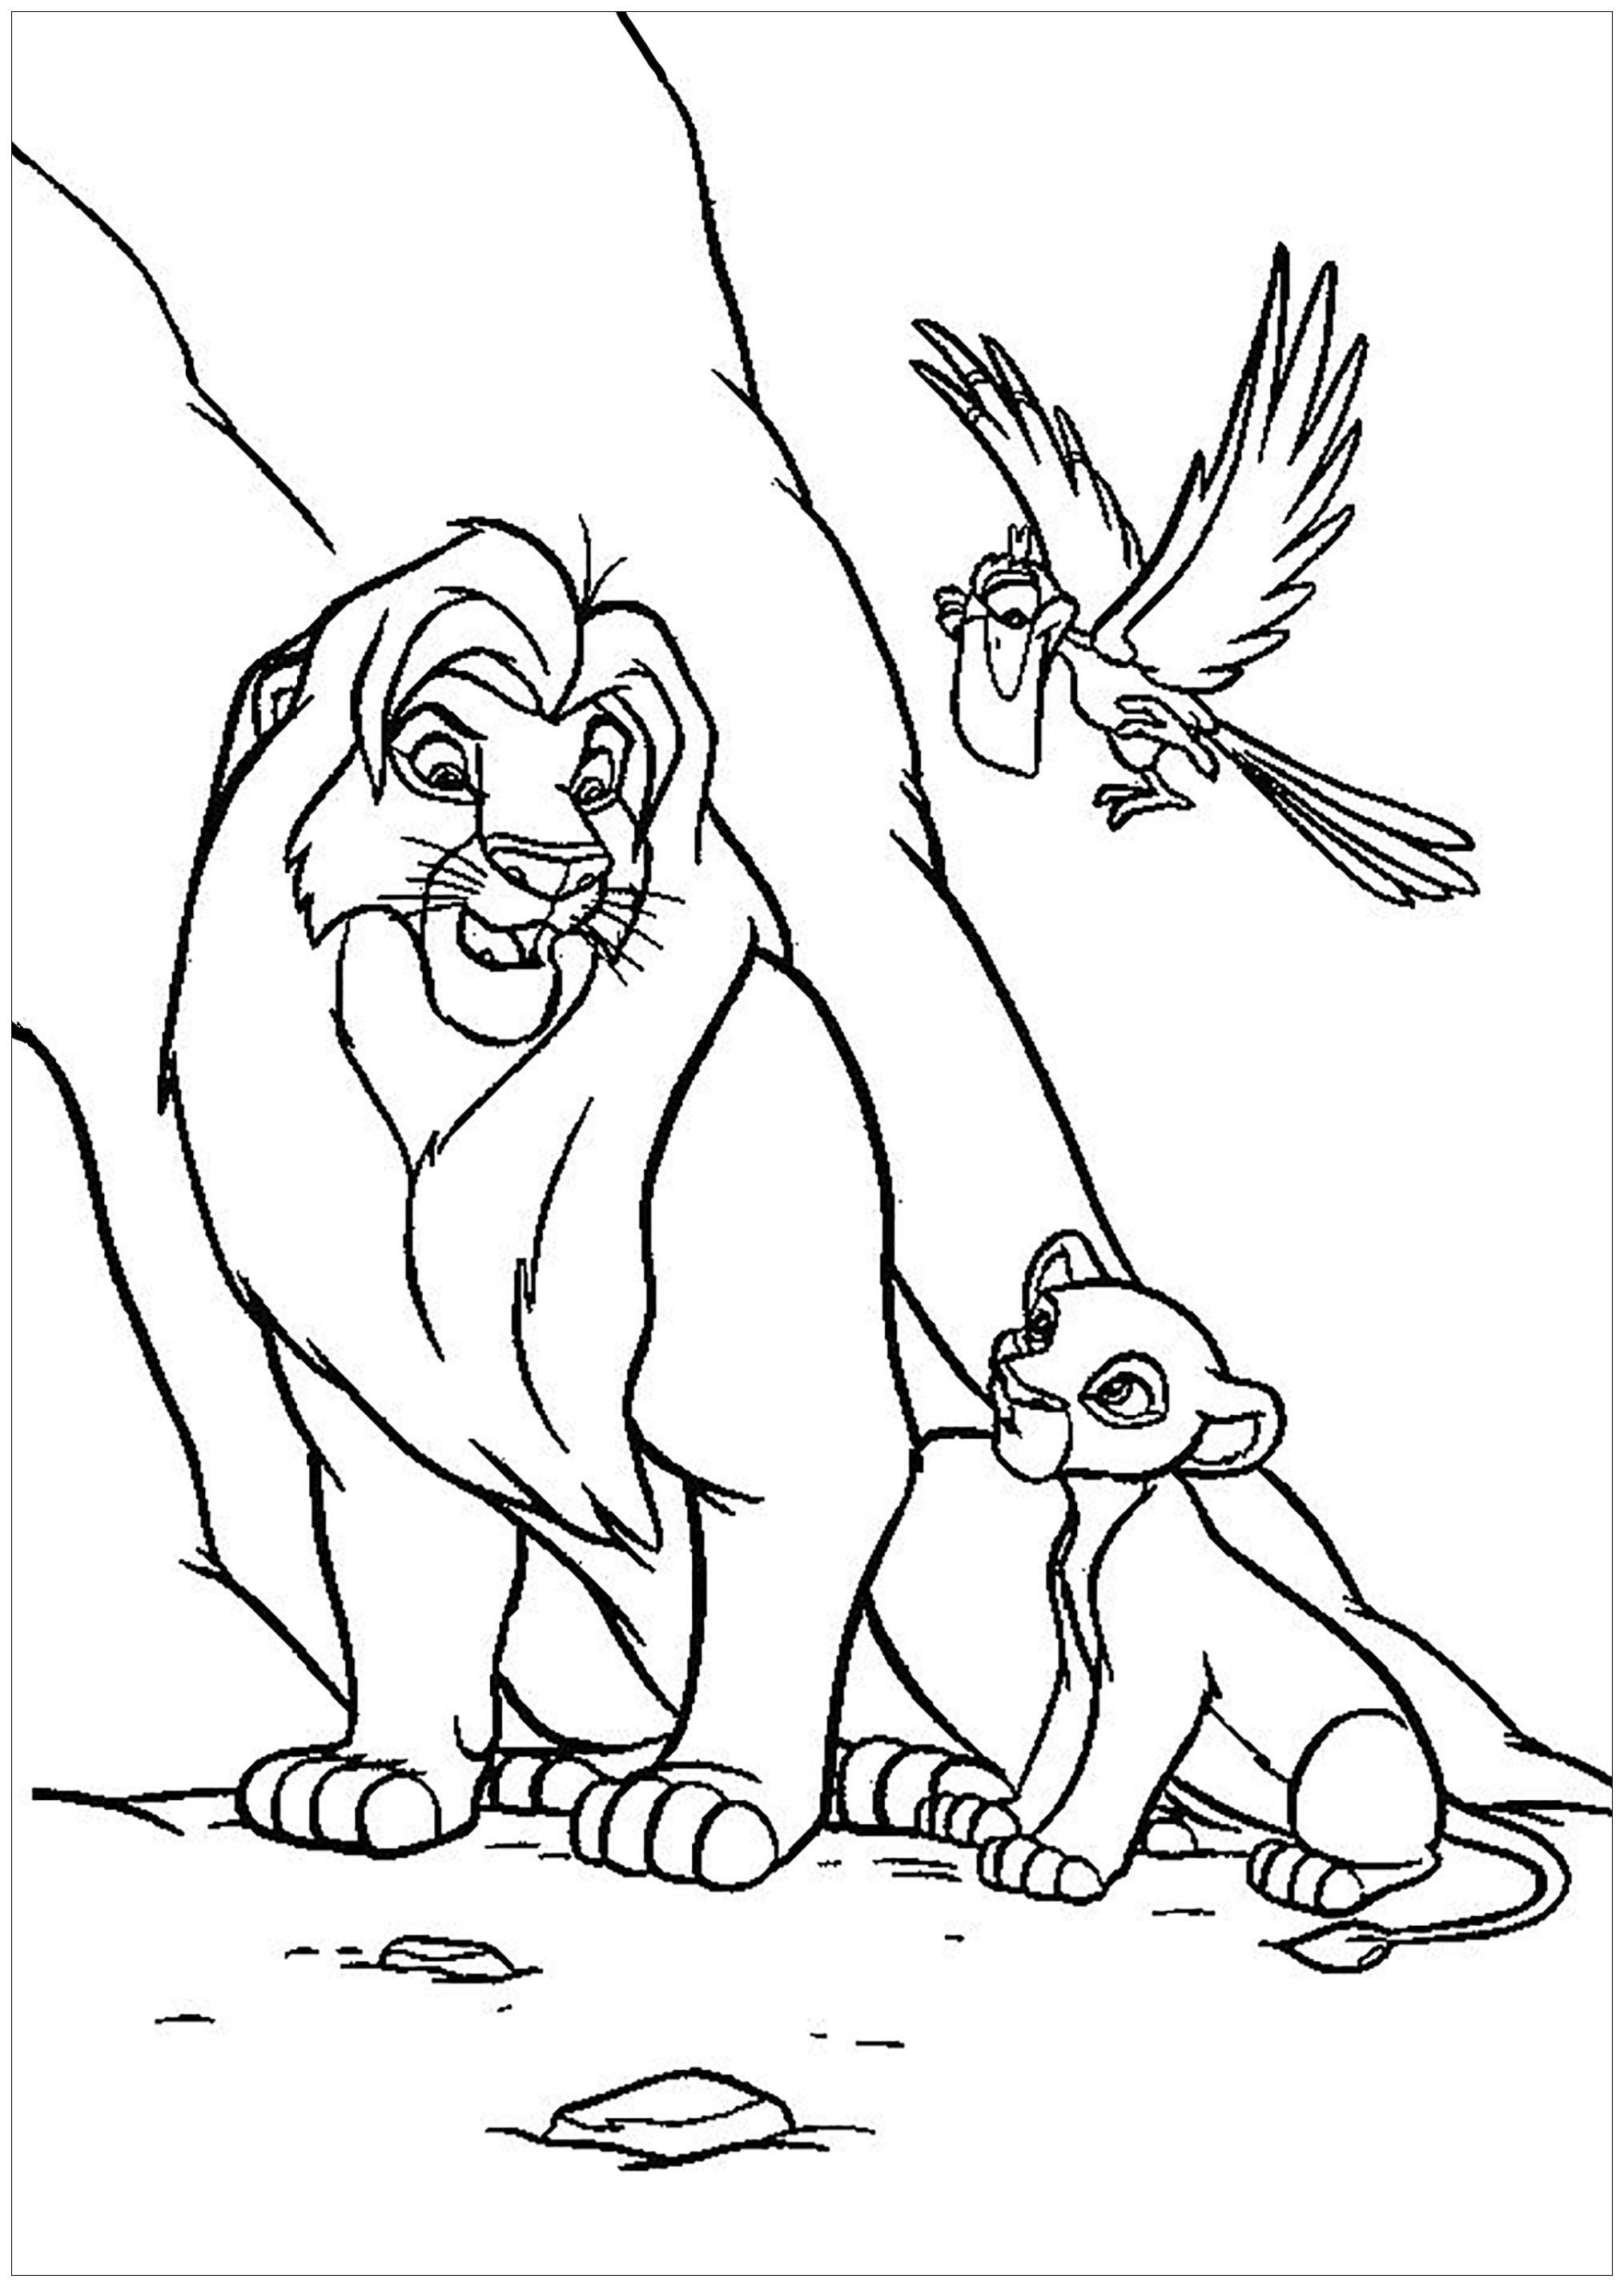 42 Coloring Page Lion King Animal Coloring Pages Disney Coloring Pages King Coloring Book